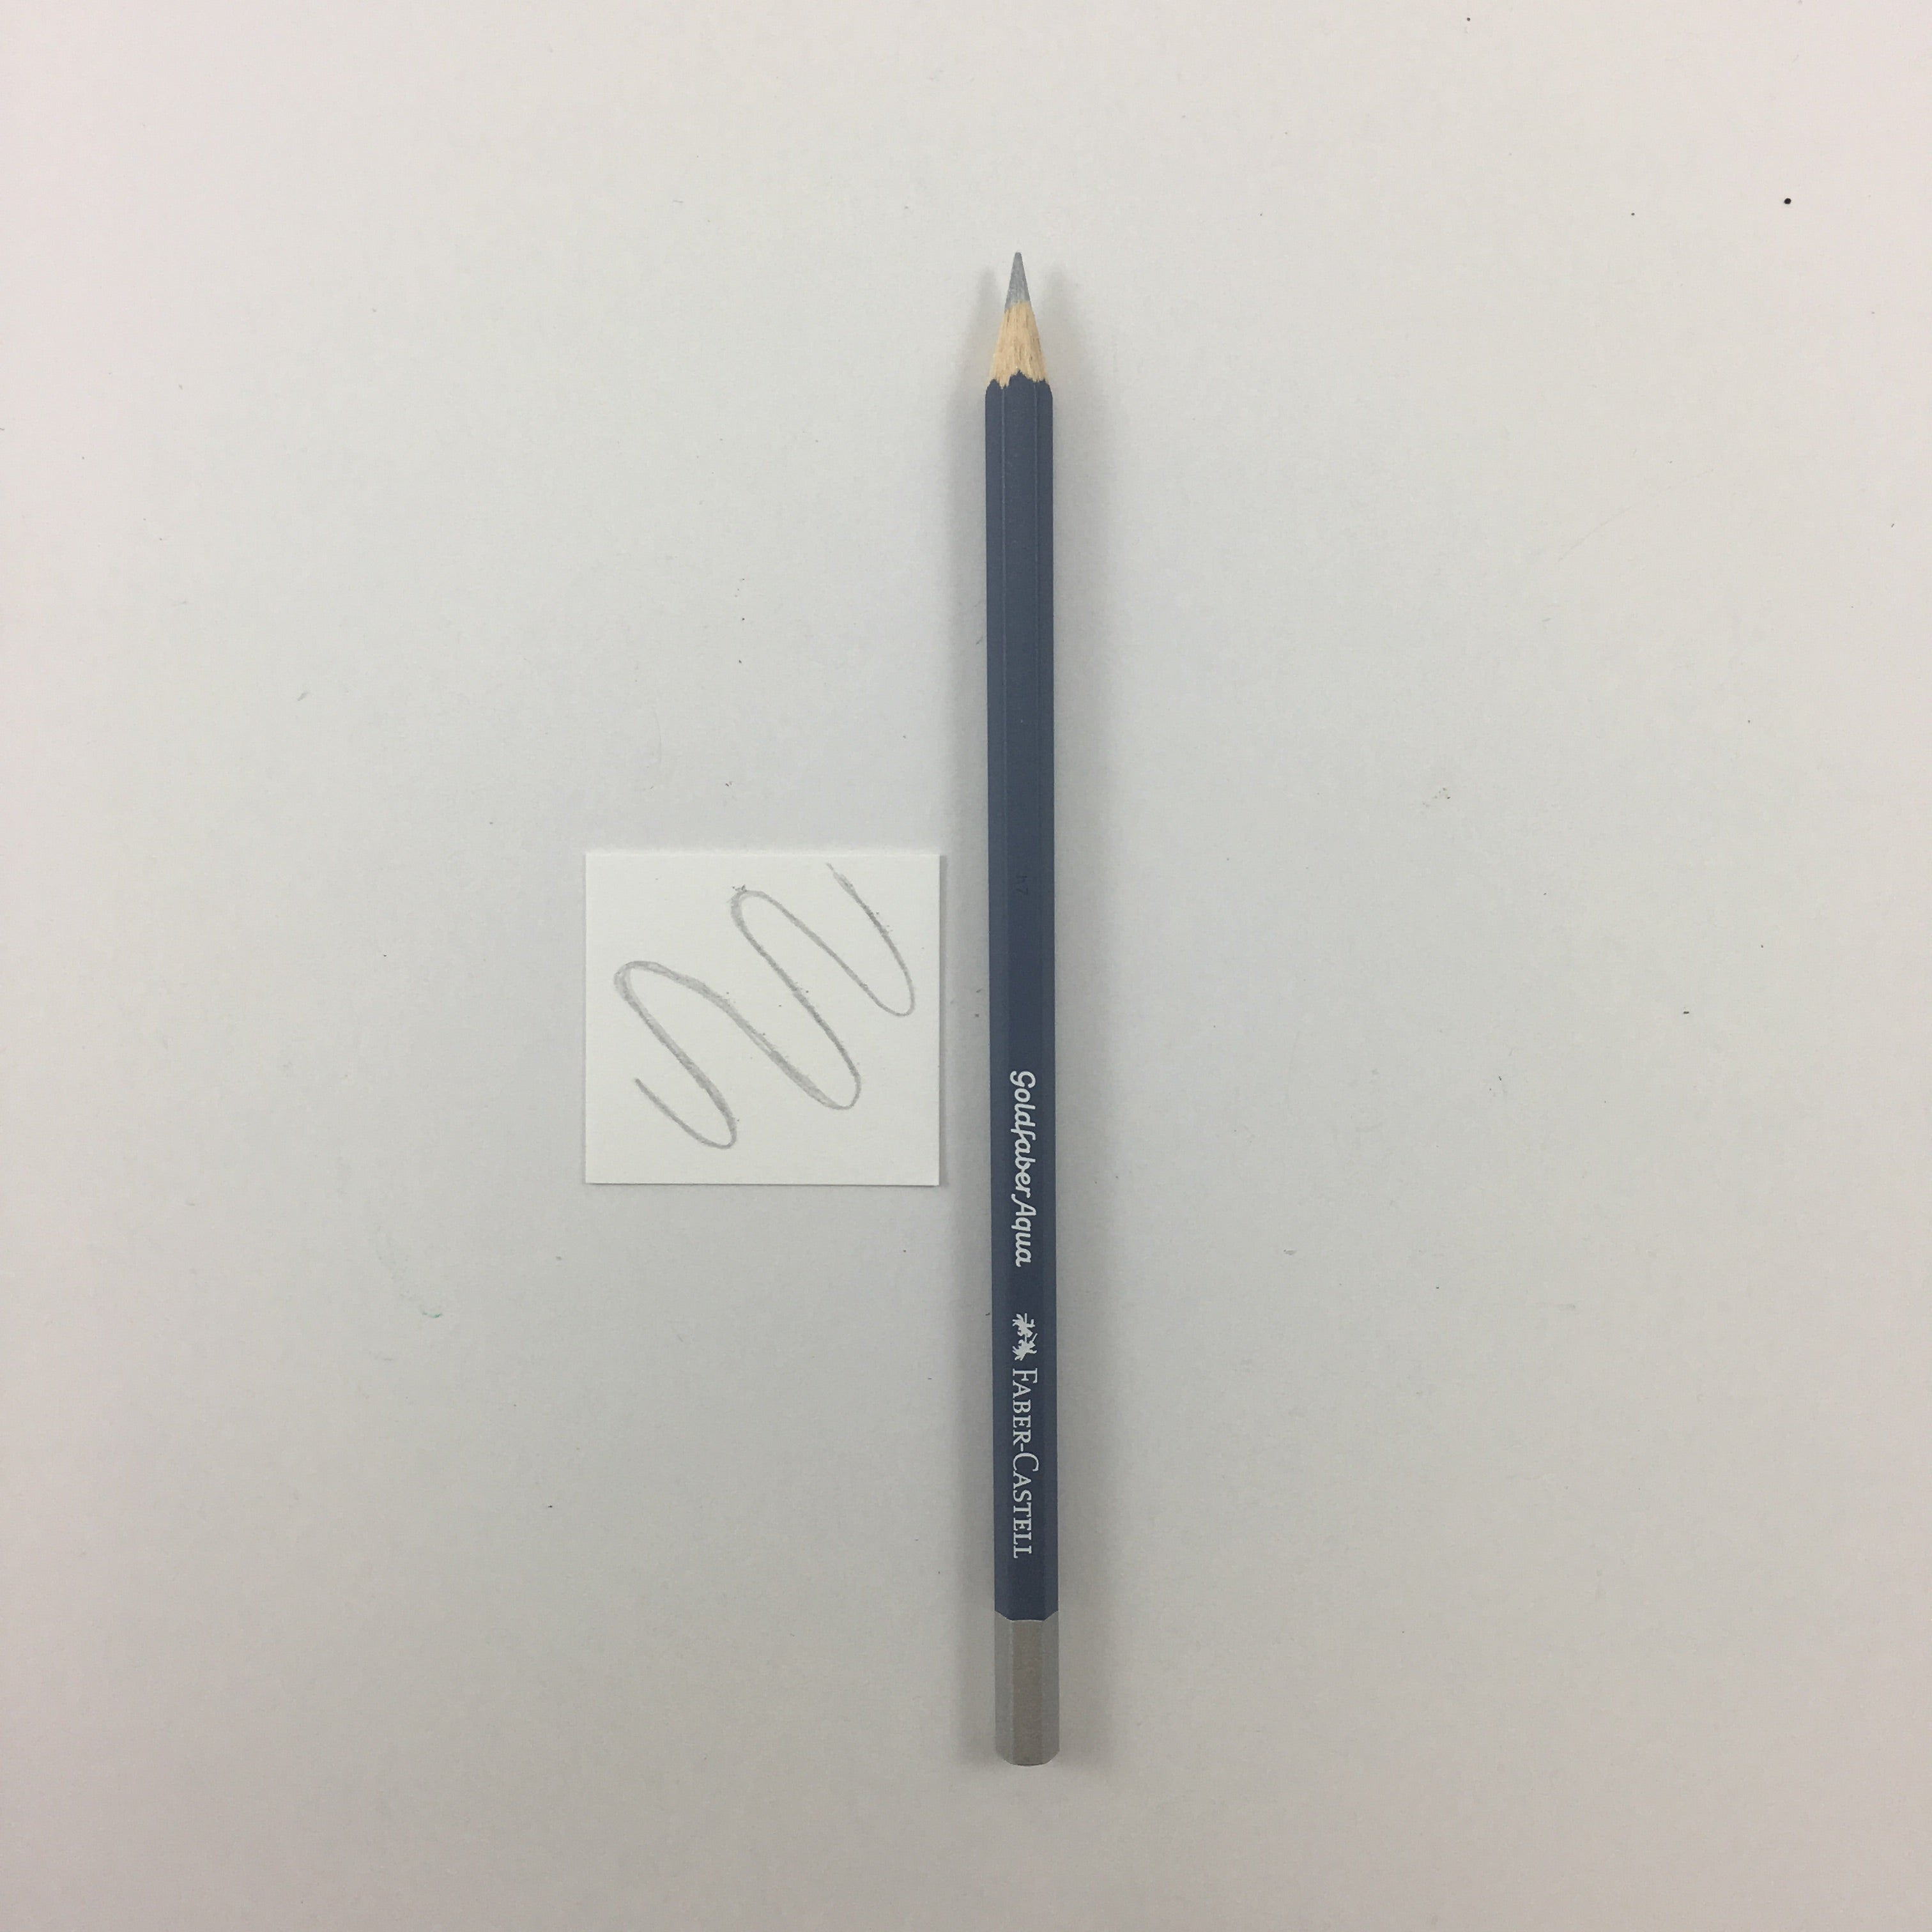 Faber-Castell Goldfaber Aqua Watercolor Pencils - Individuals - 251 - Silver by Faber-Castell - K. A. Artist Shop